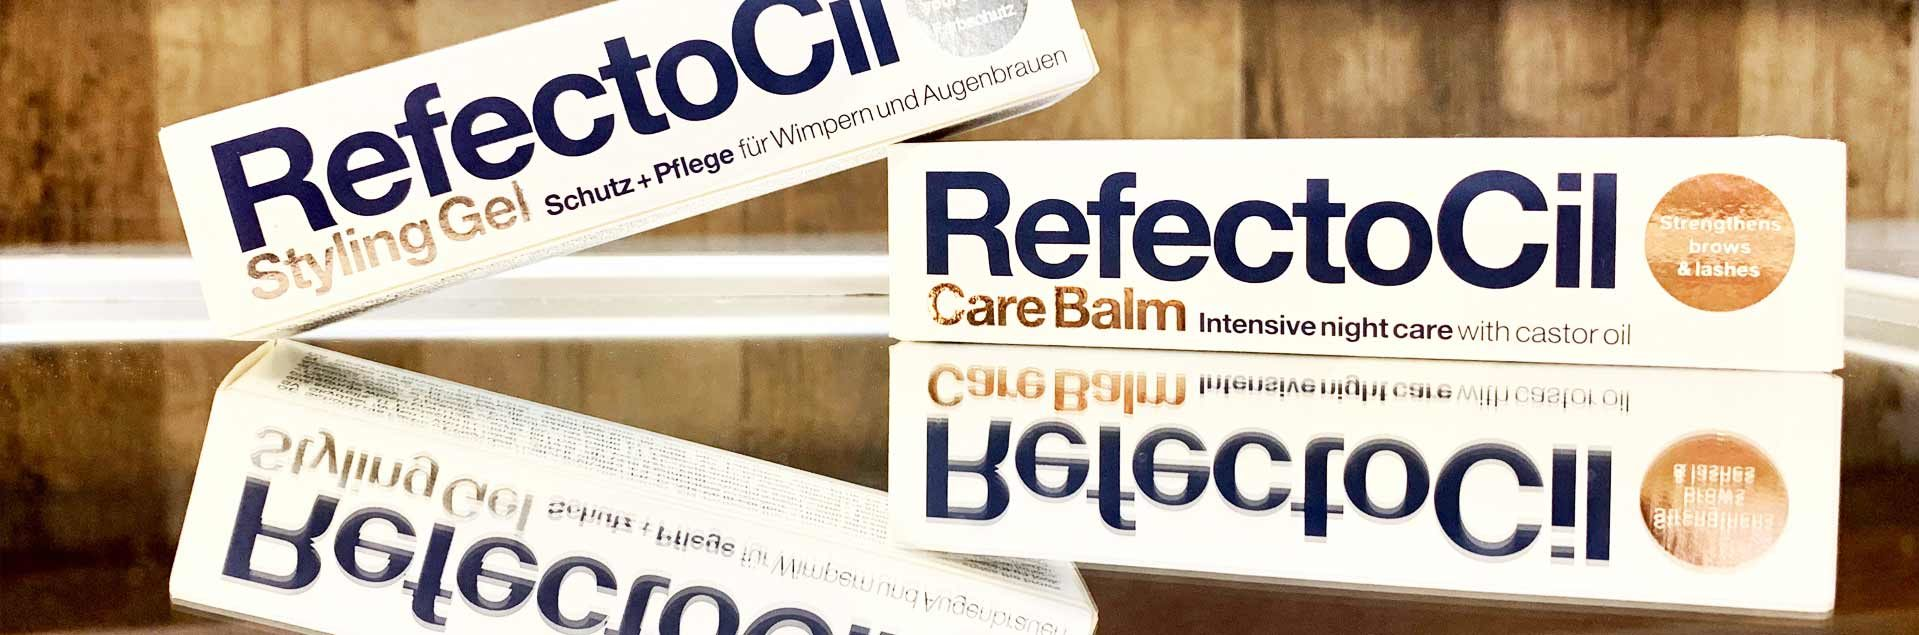 RefectoCil Care Balm & Stylig Gel